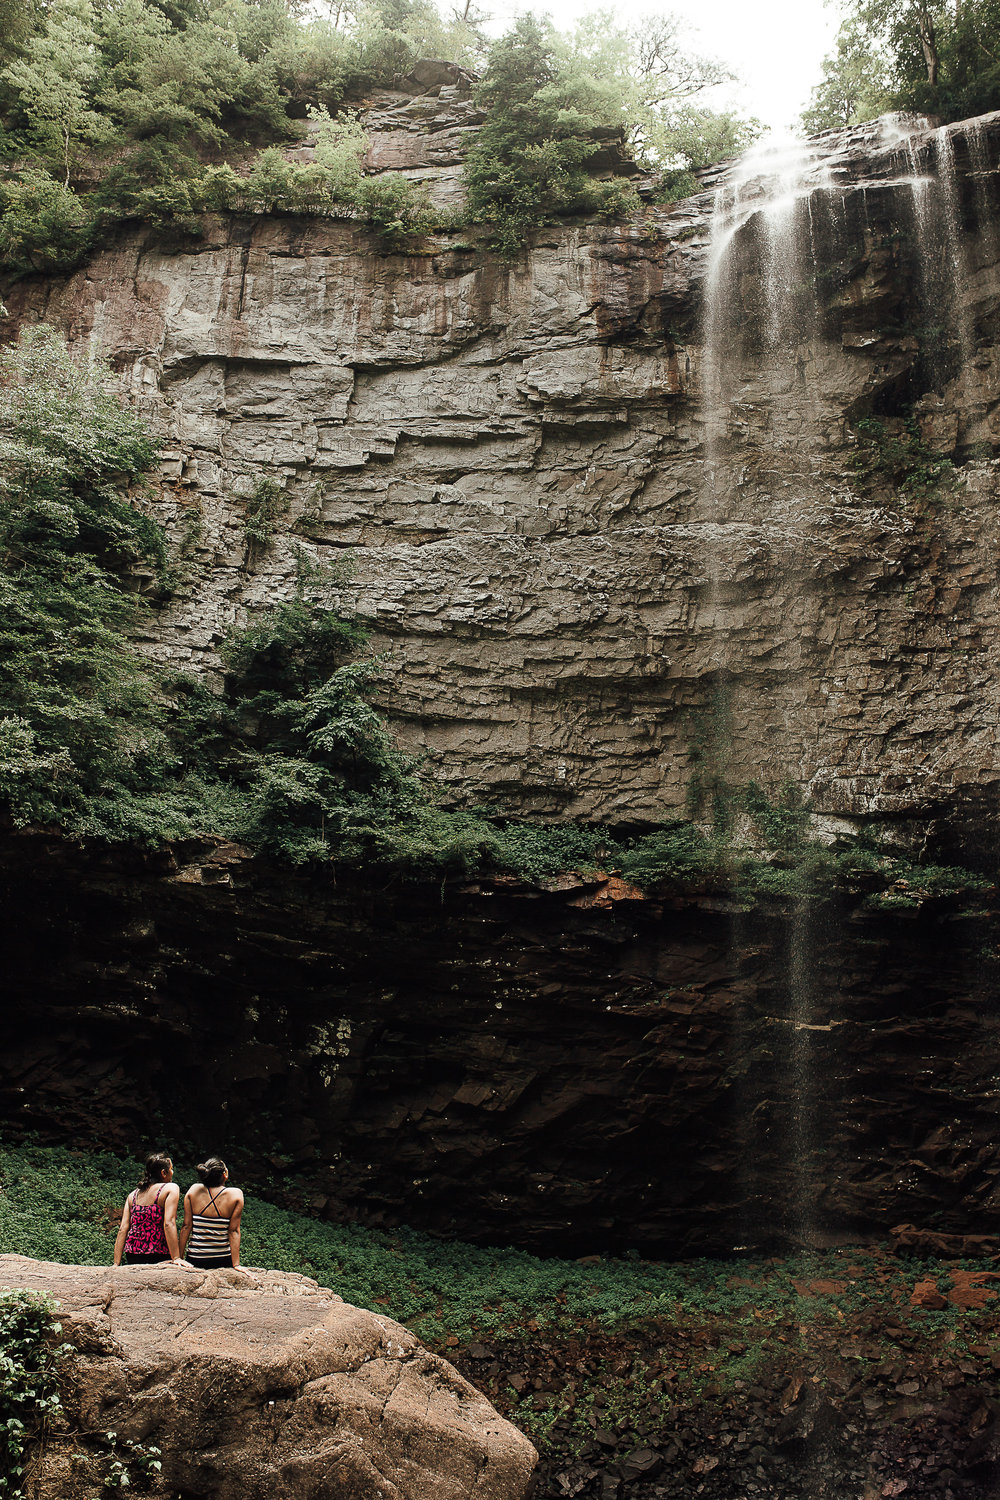 fall-creek-falls-state-park-cassie-cook-photography-travel-photographer